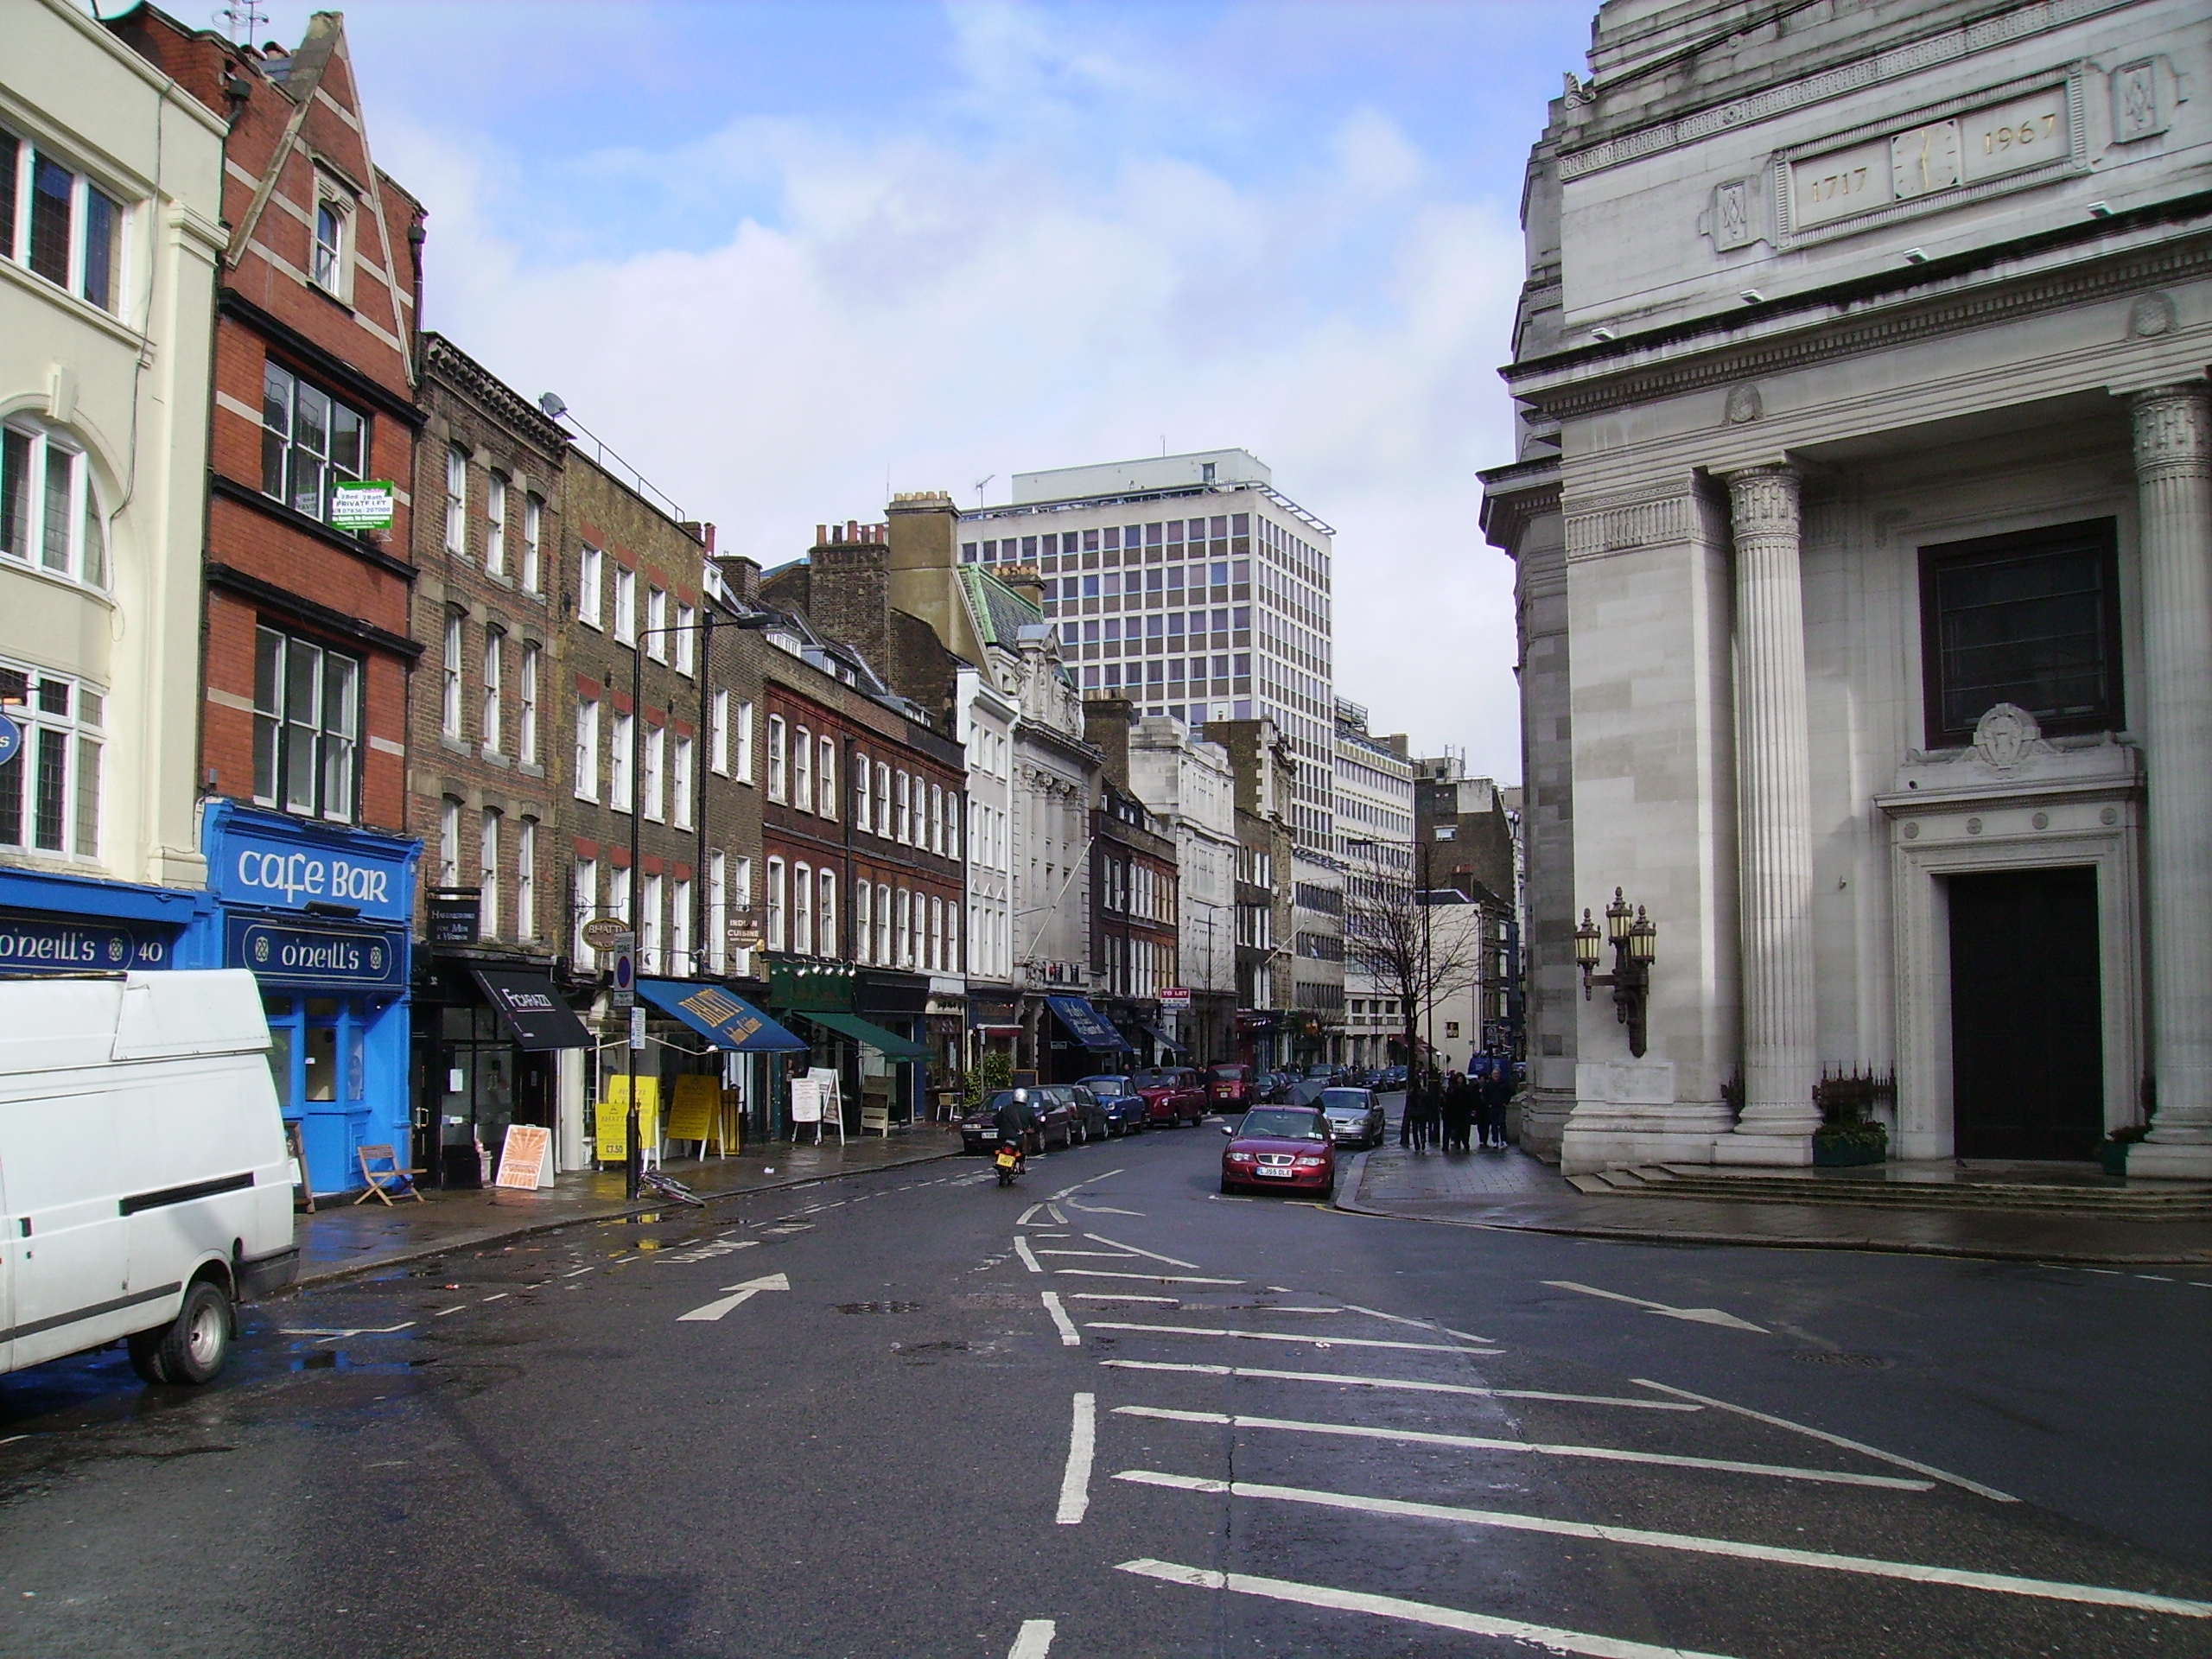 File:Great Queen Street.jpg - Wikipedia, the free encyclopedia Street